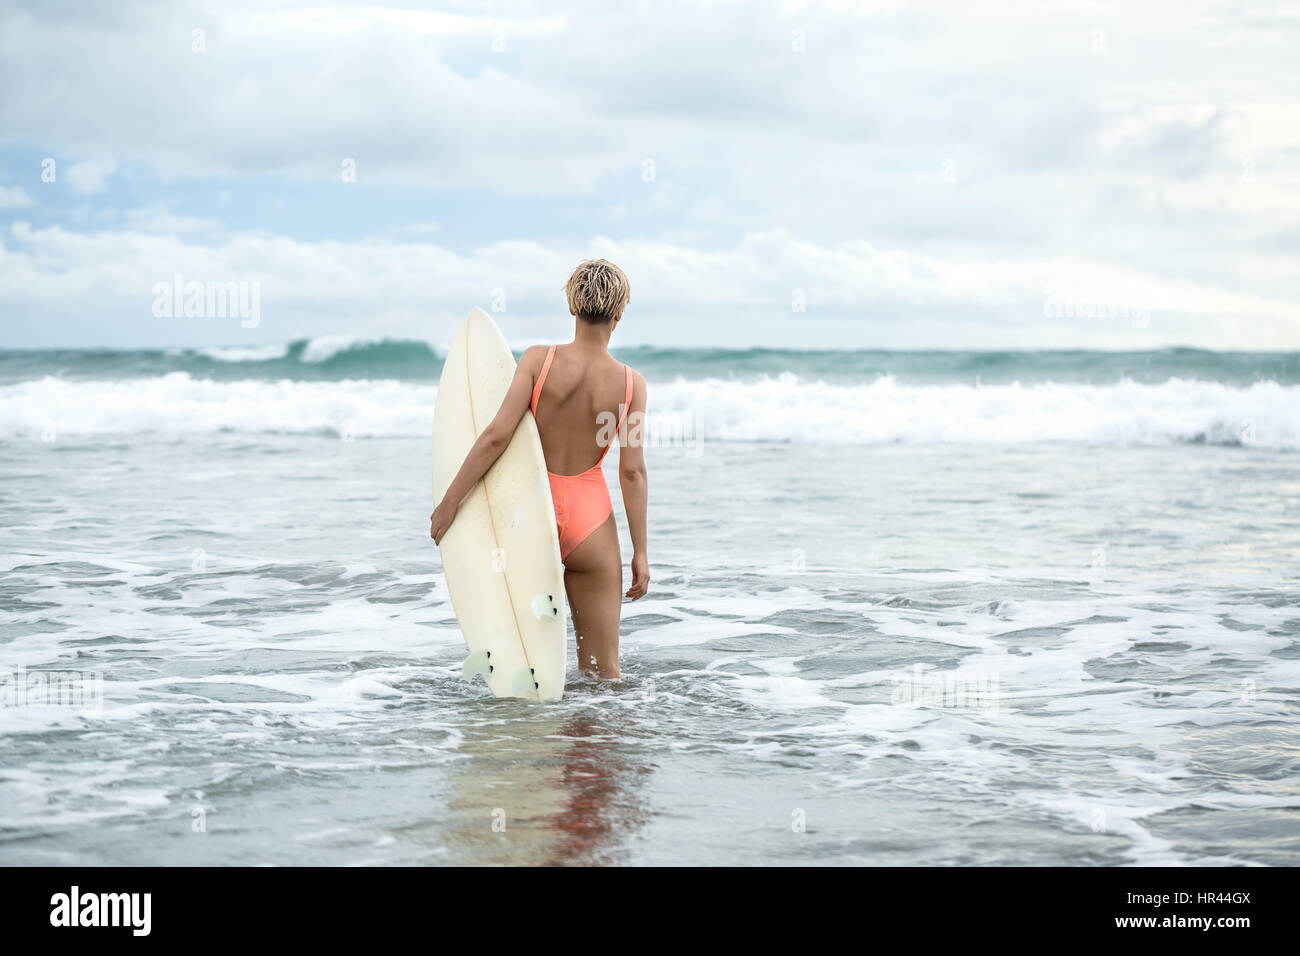 Blonde with surfboard on beach - Stock Image